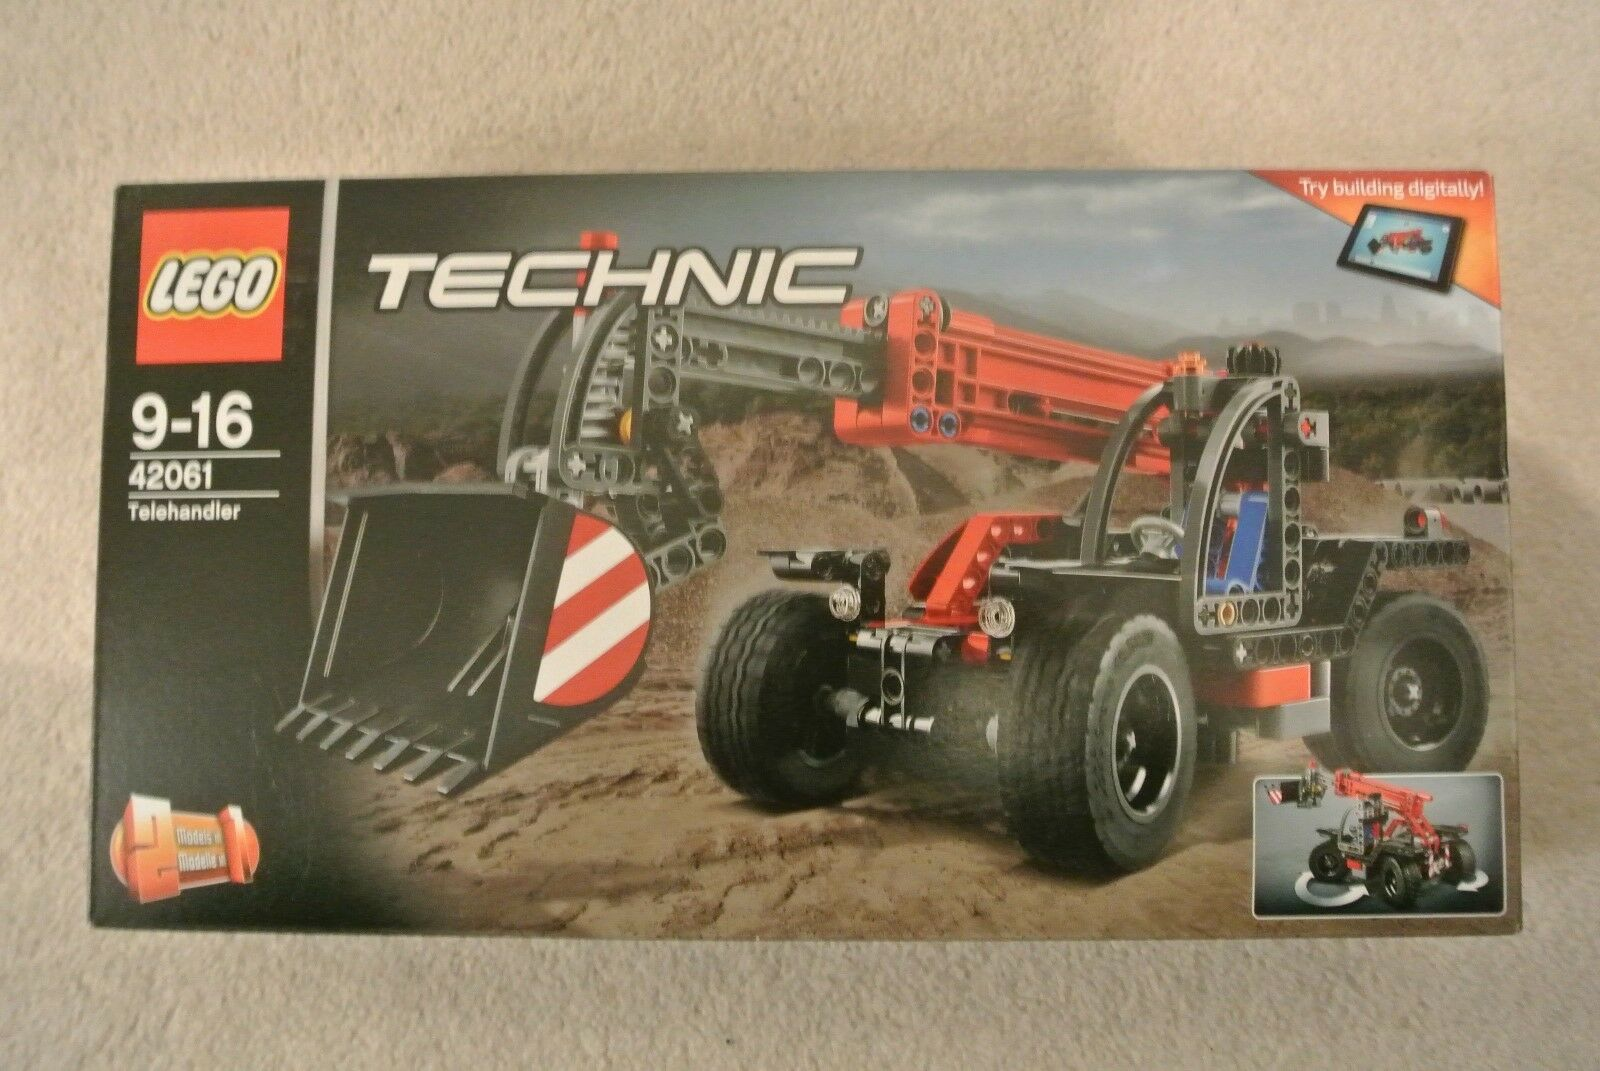 Lego Technic 42061 - Telehandler - BRAND NEW FACTORY SEALED